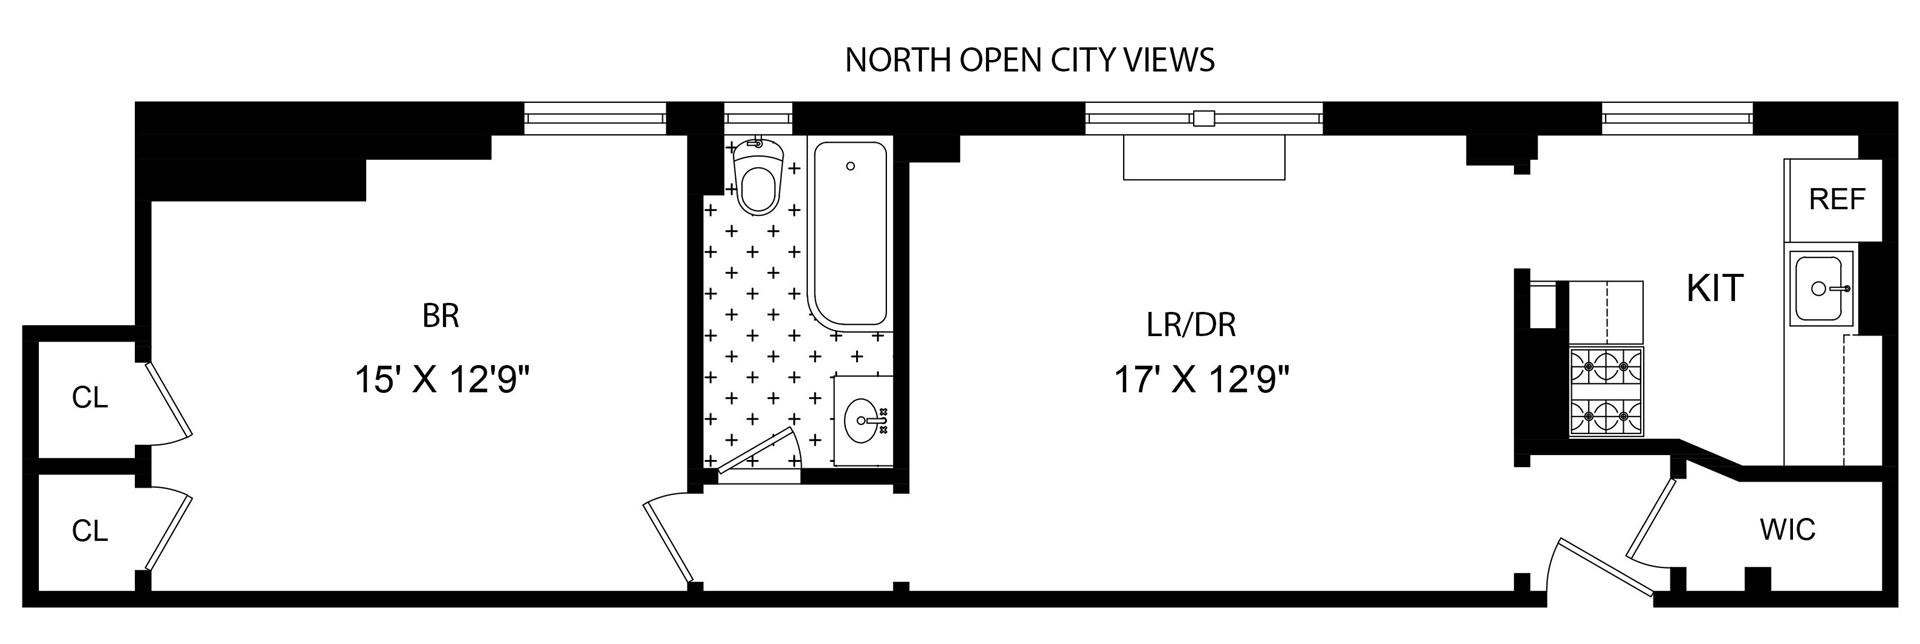 Floor plan of 255 West 84th St, 12F - Upper West Side, New York